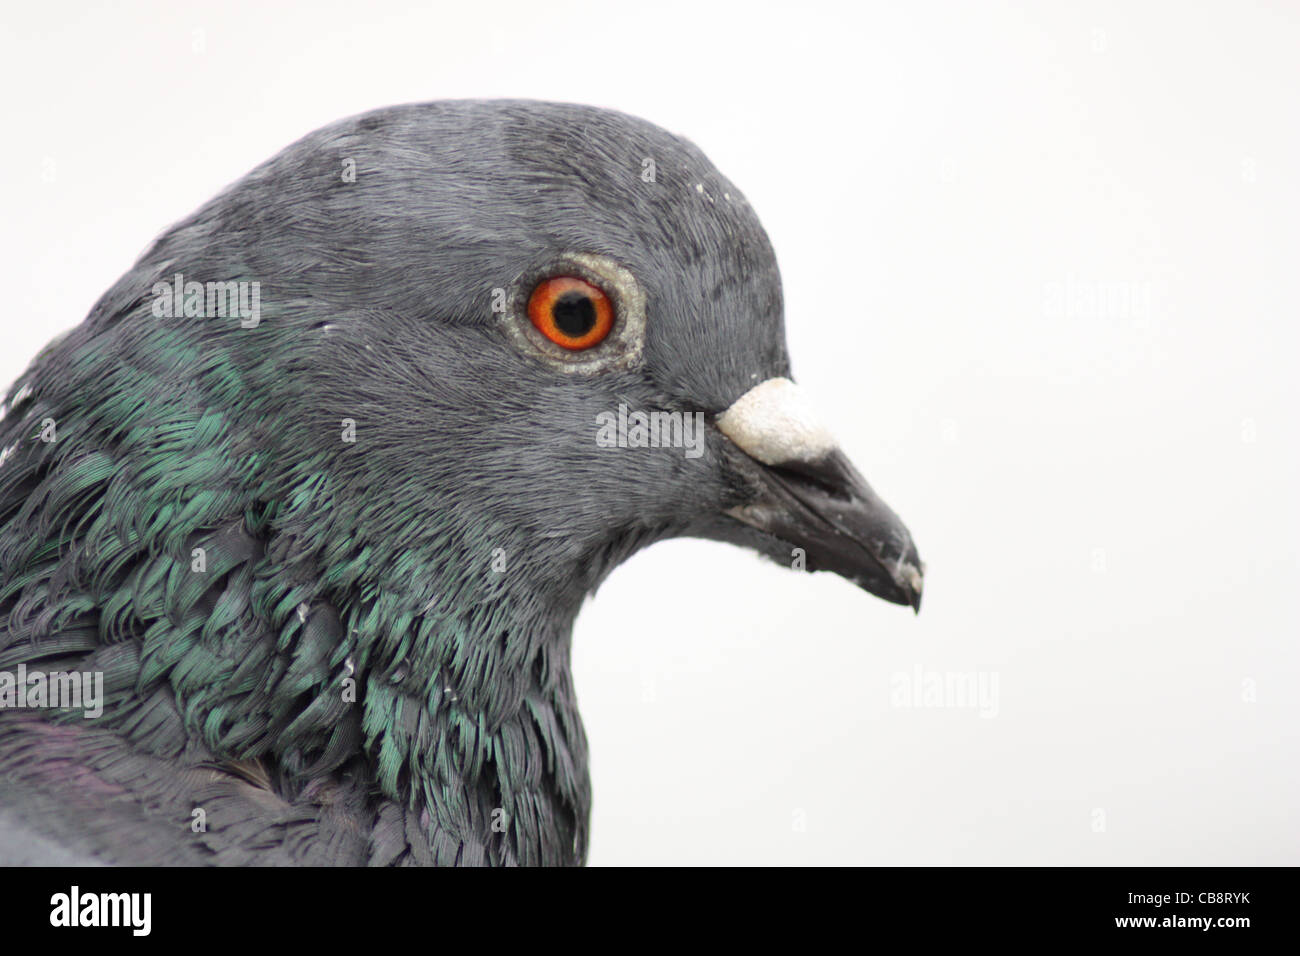 Close up of a pigeon head - Stock Image